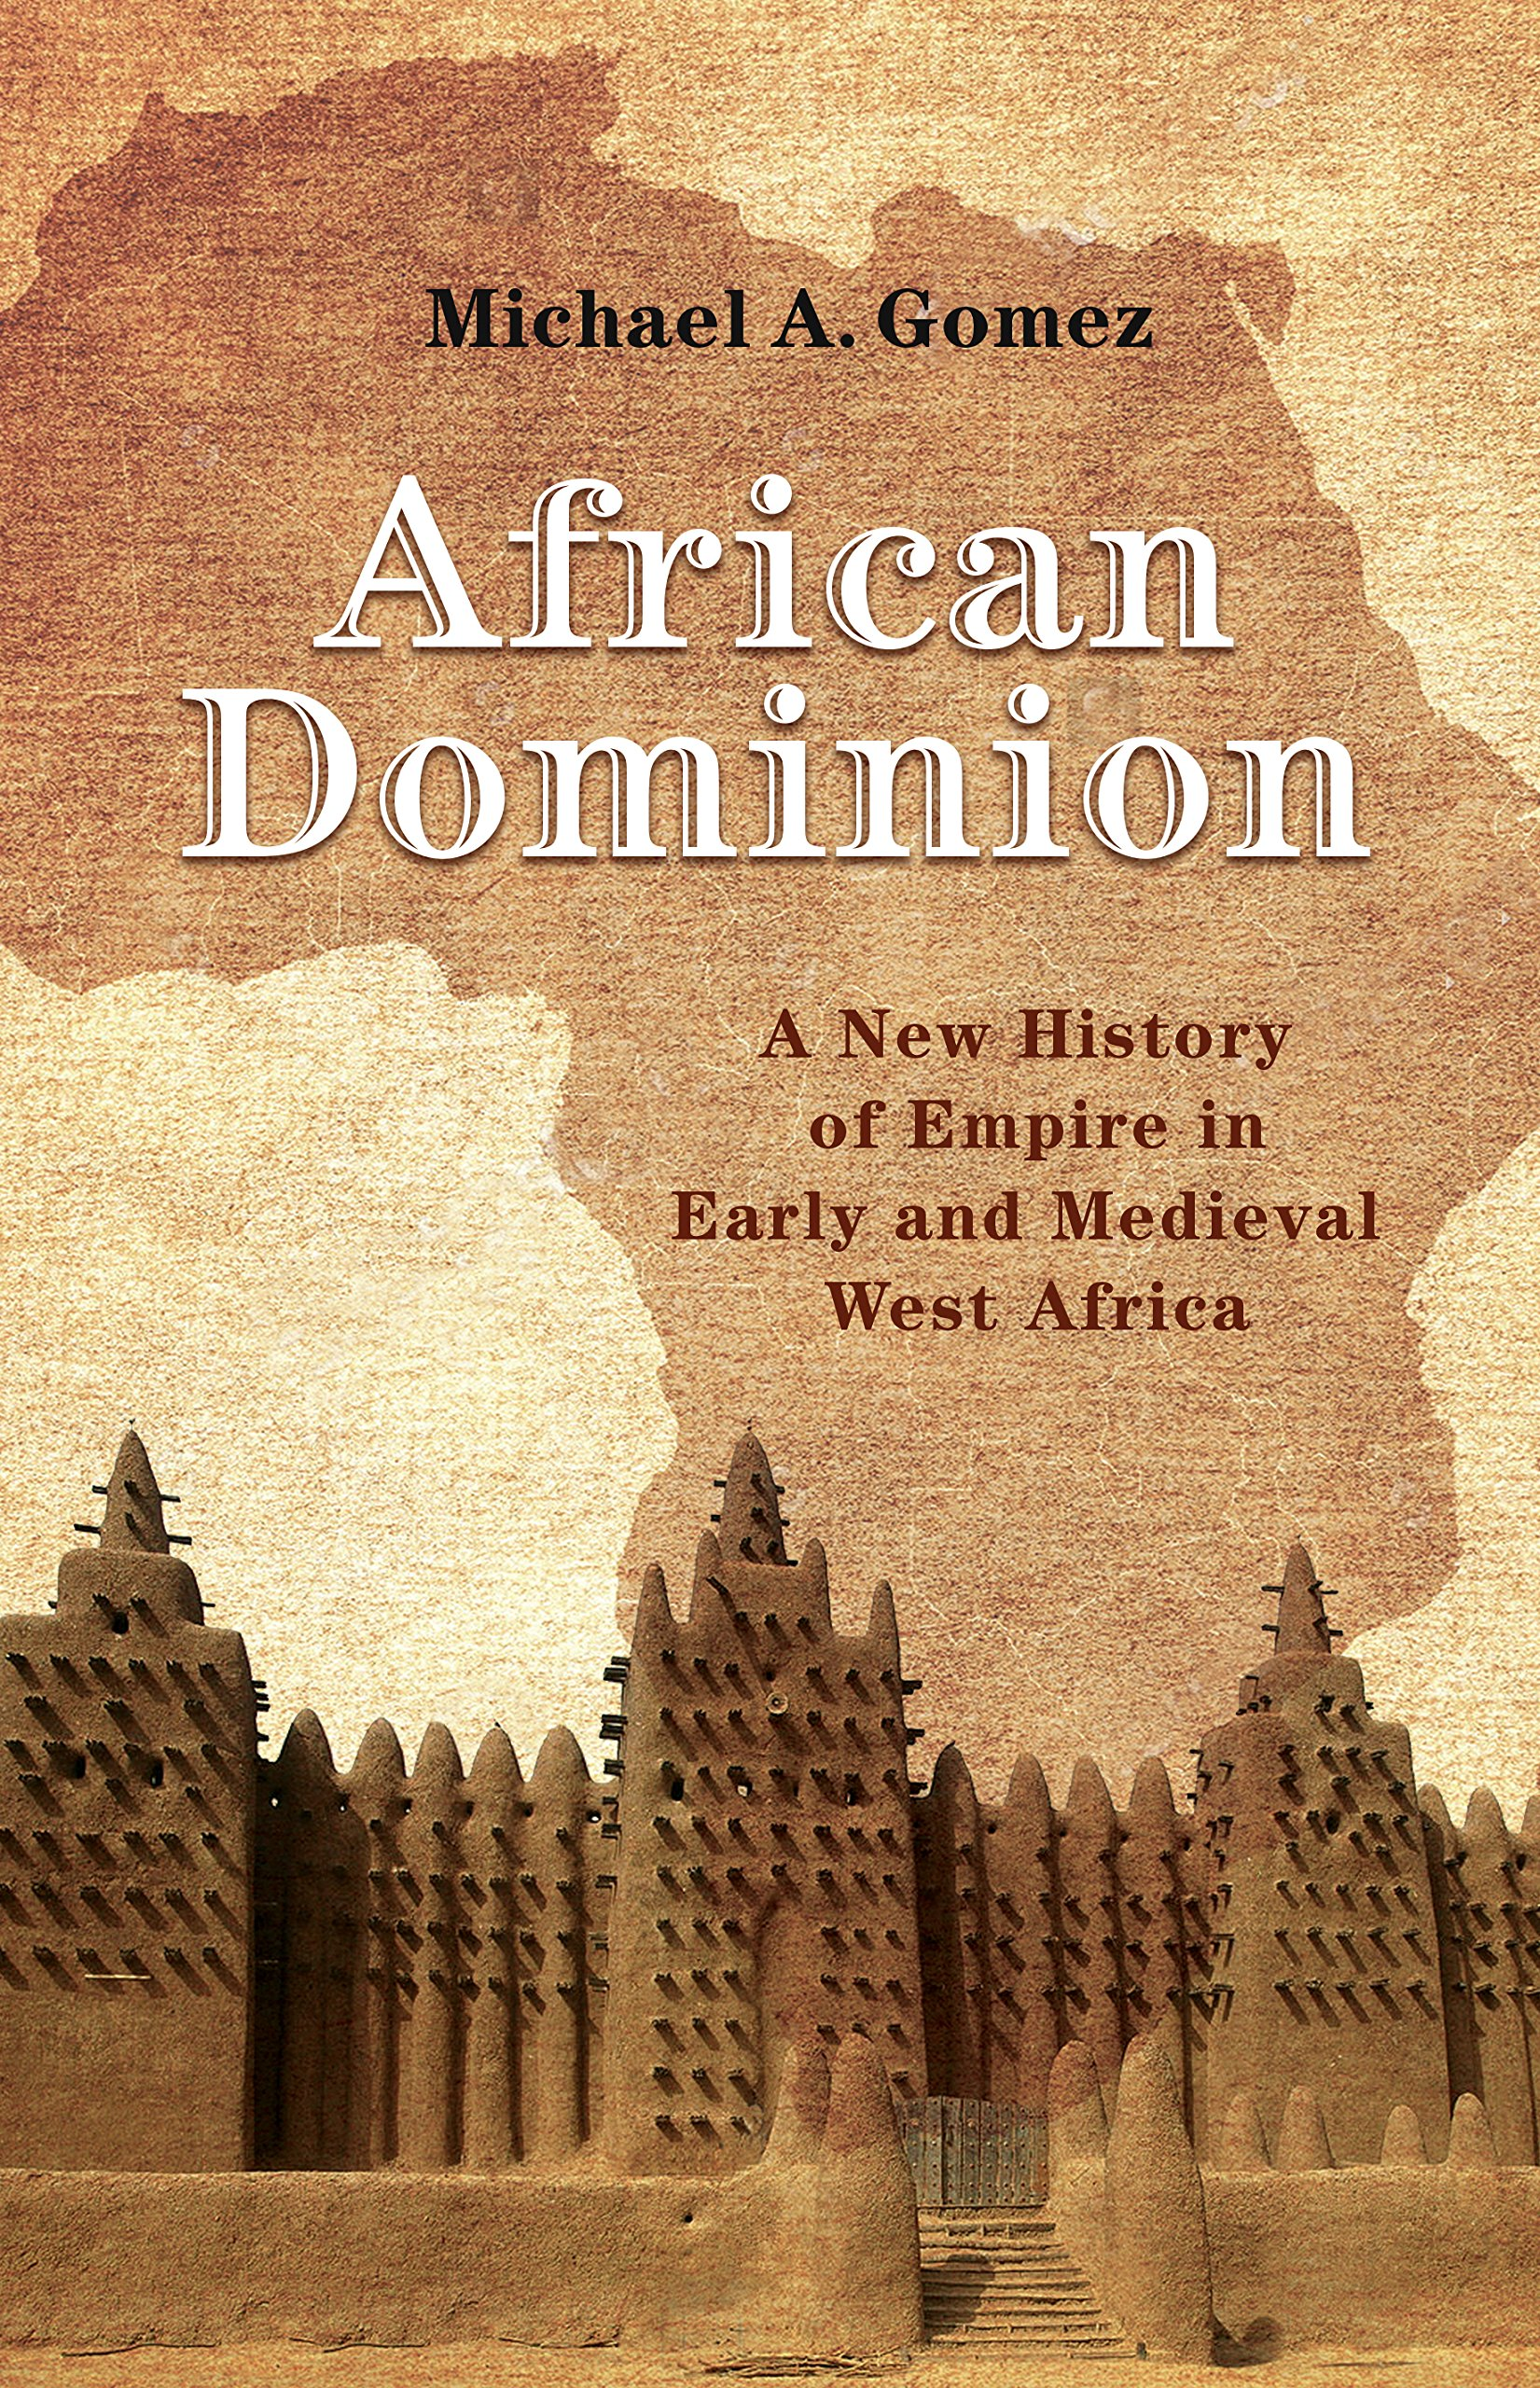 African Dominion: A New History of Empire in Early and Medieval West Africa  Hardcover – January 1, 2018